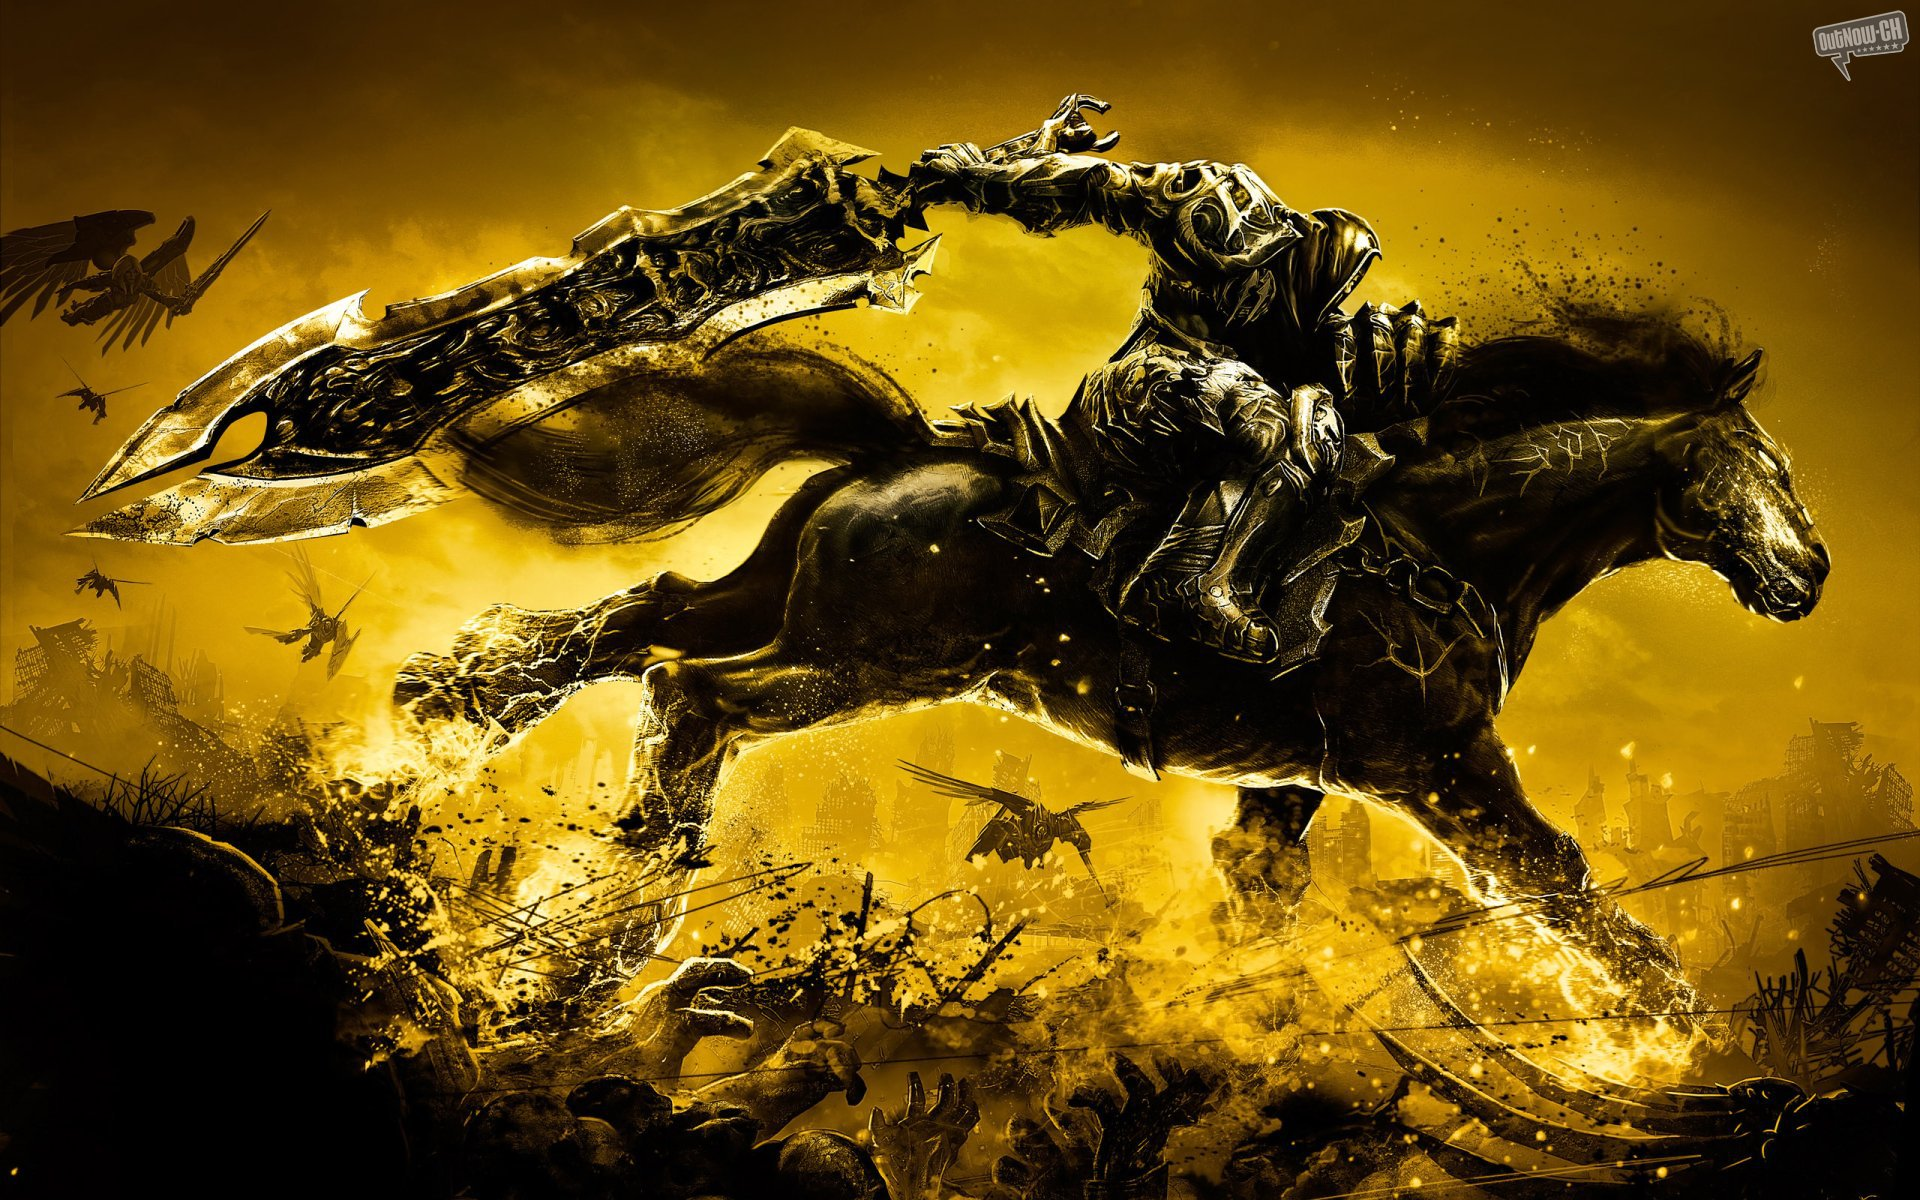 Devil May Cry Wallpaper Hd Darksiders Wallpapers Darksiders Stock Photos